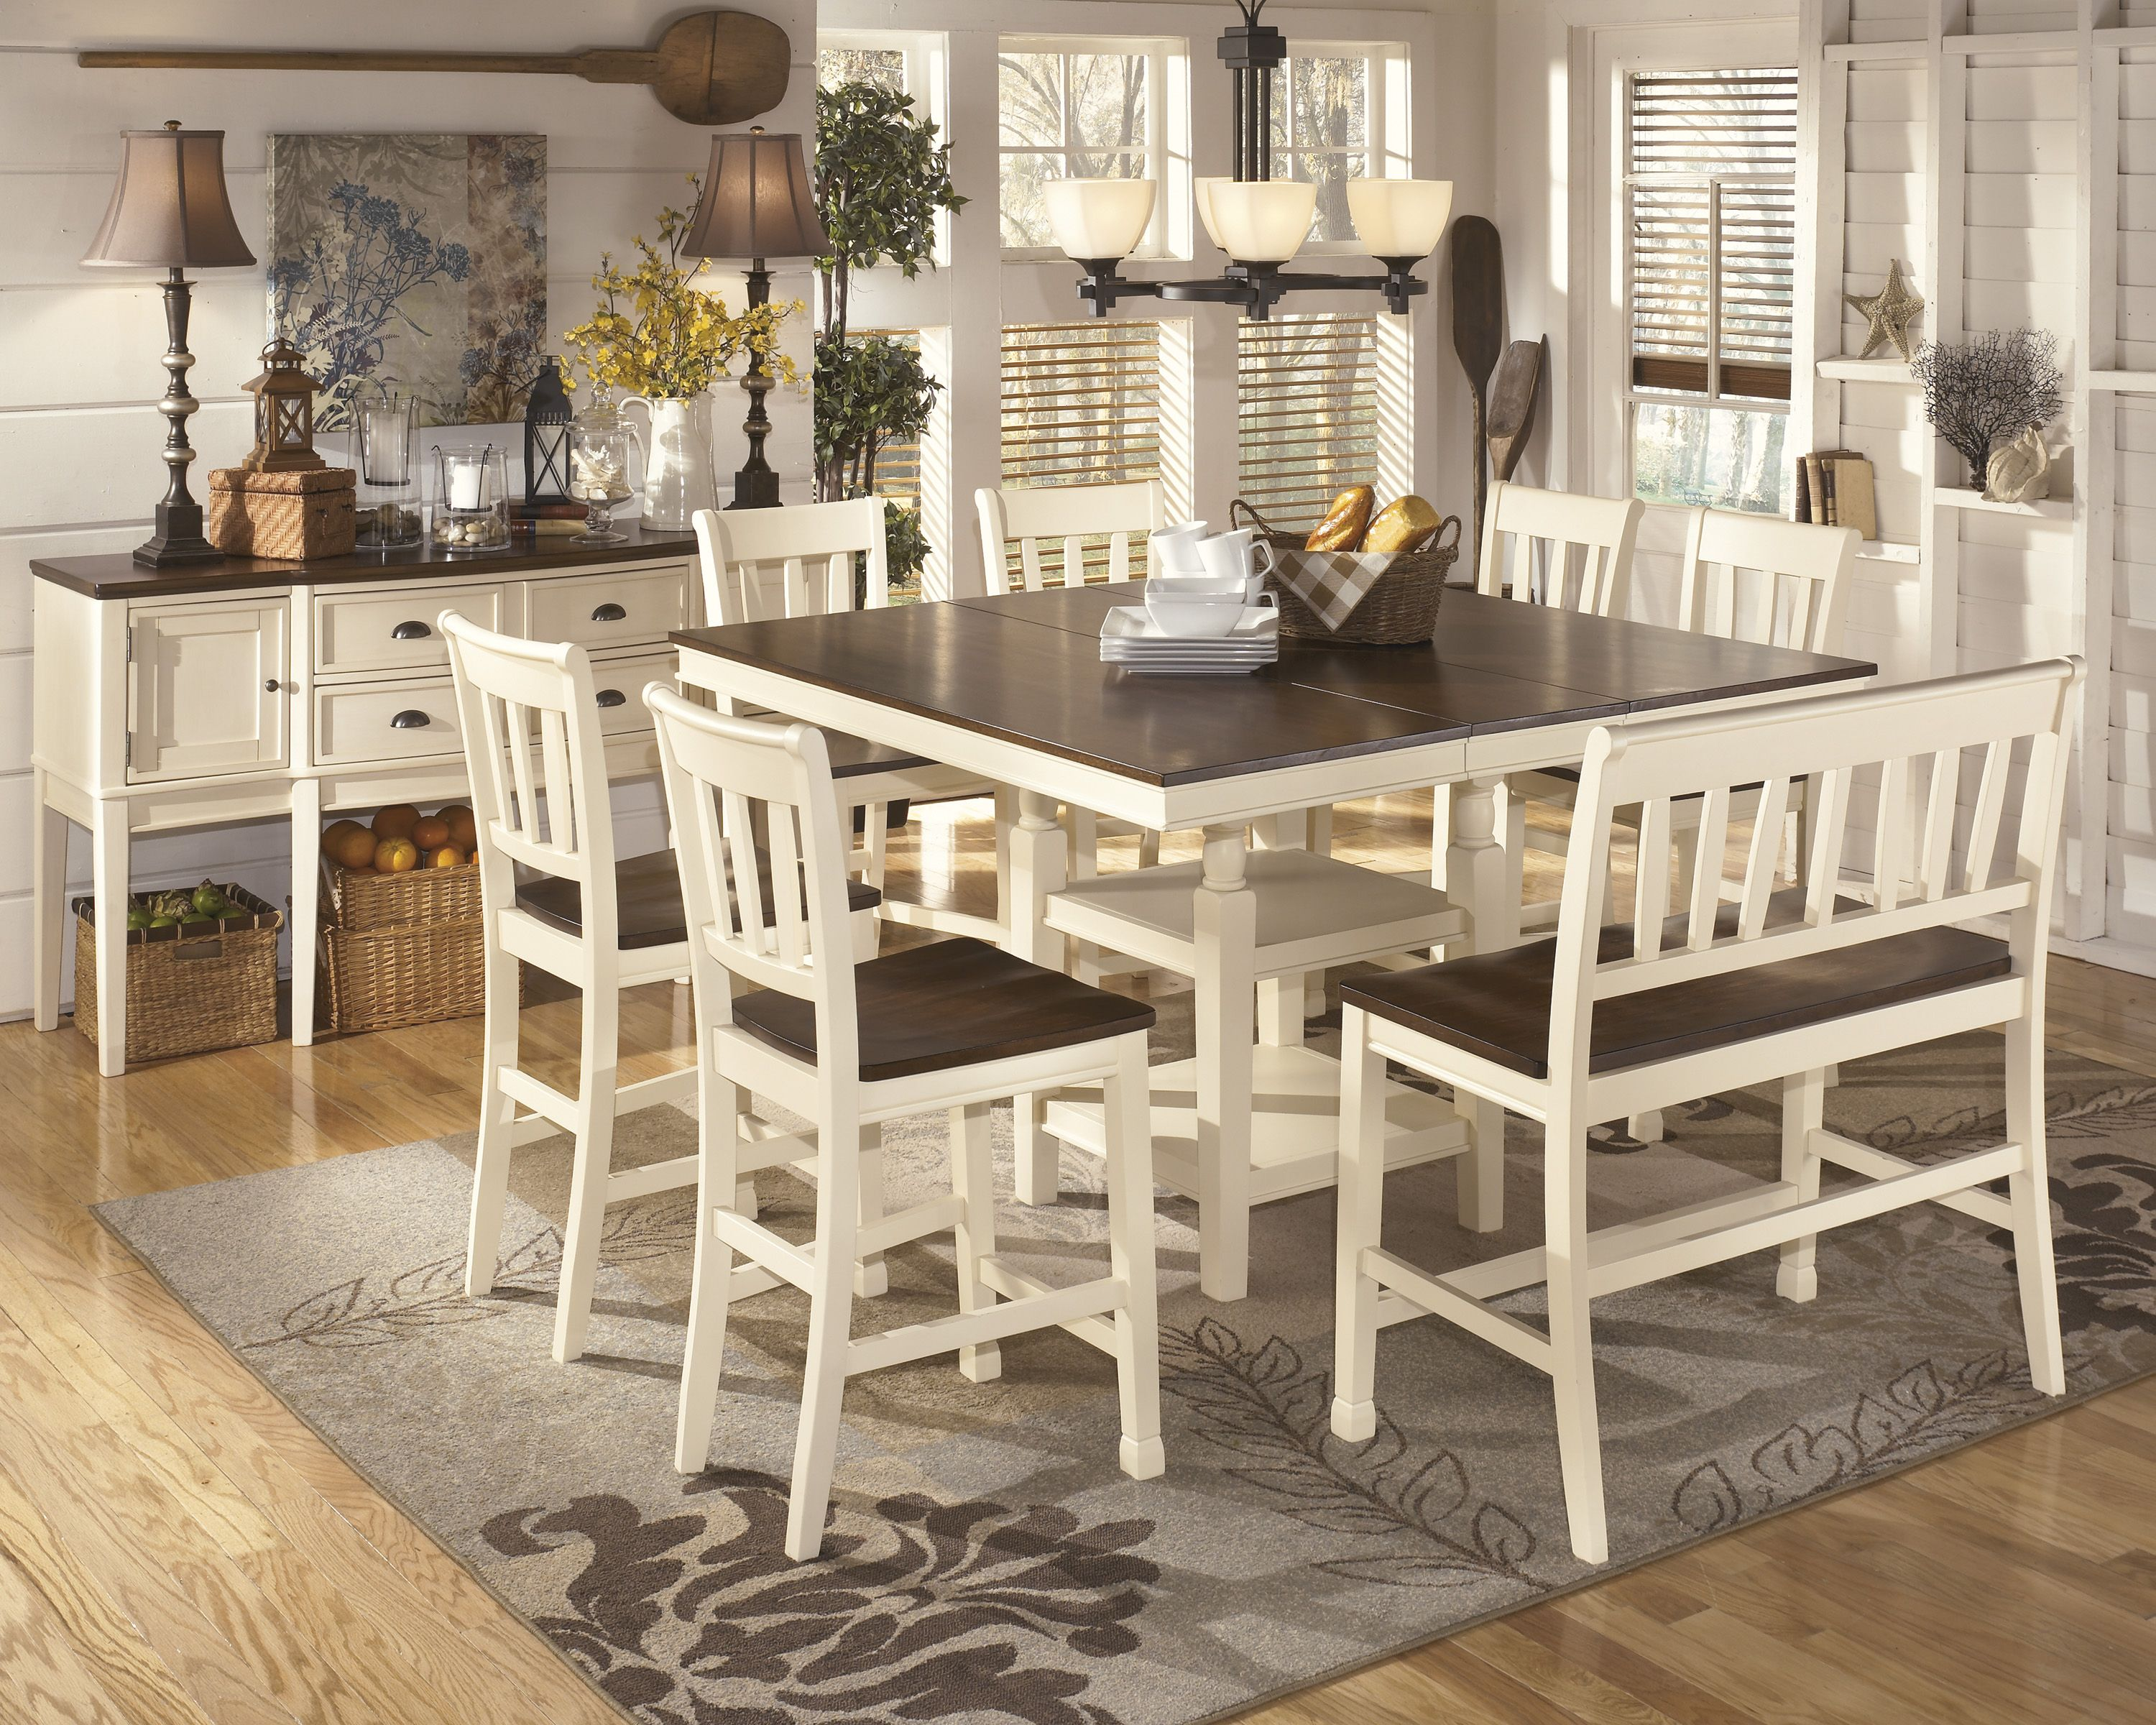 Whitesburg Dining Set D583 Incorporate cottage cool warmth in